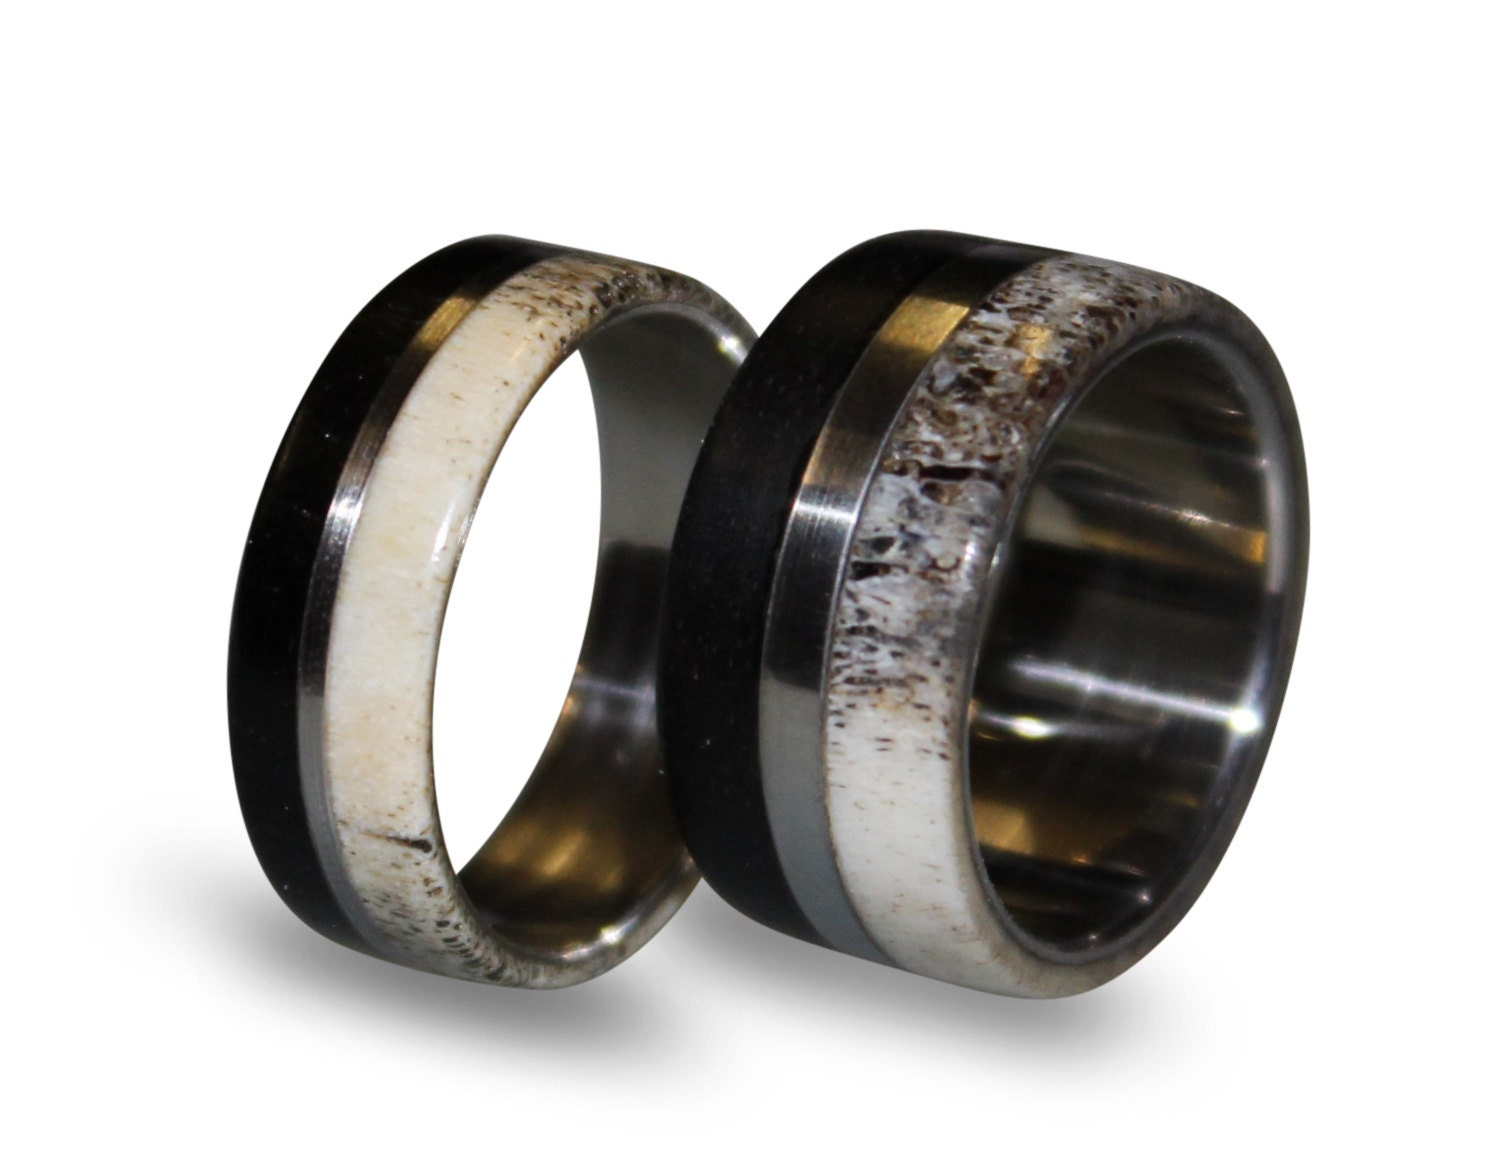 deer antler antler ring wooden zoom - Deer Antler Wedding Rings